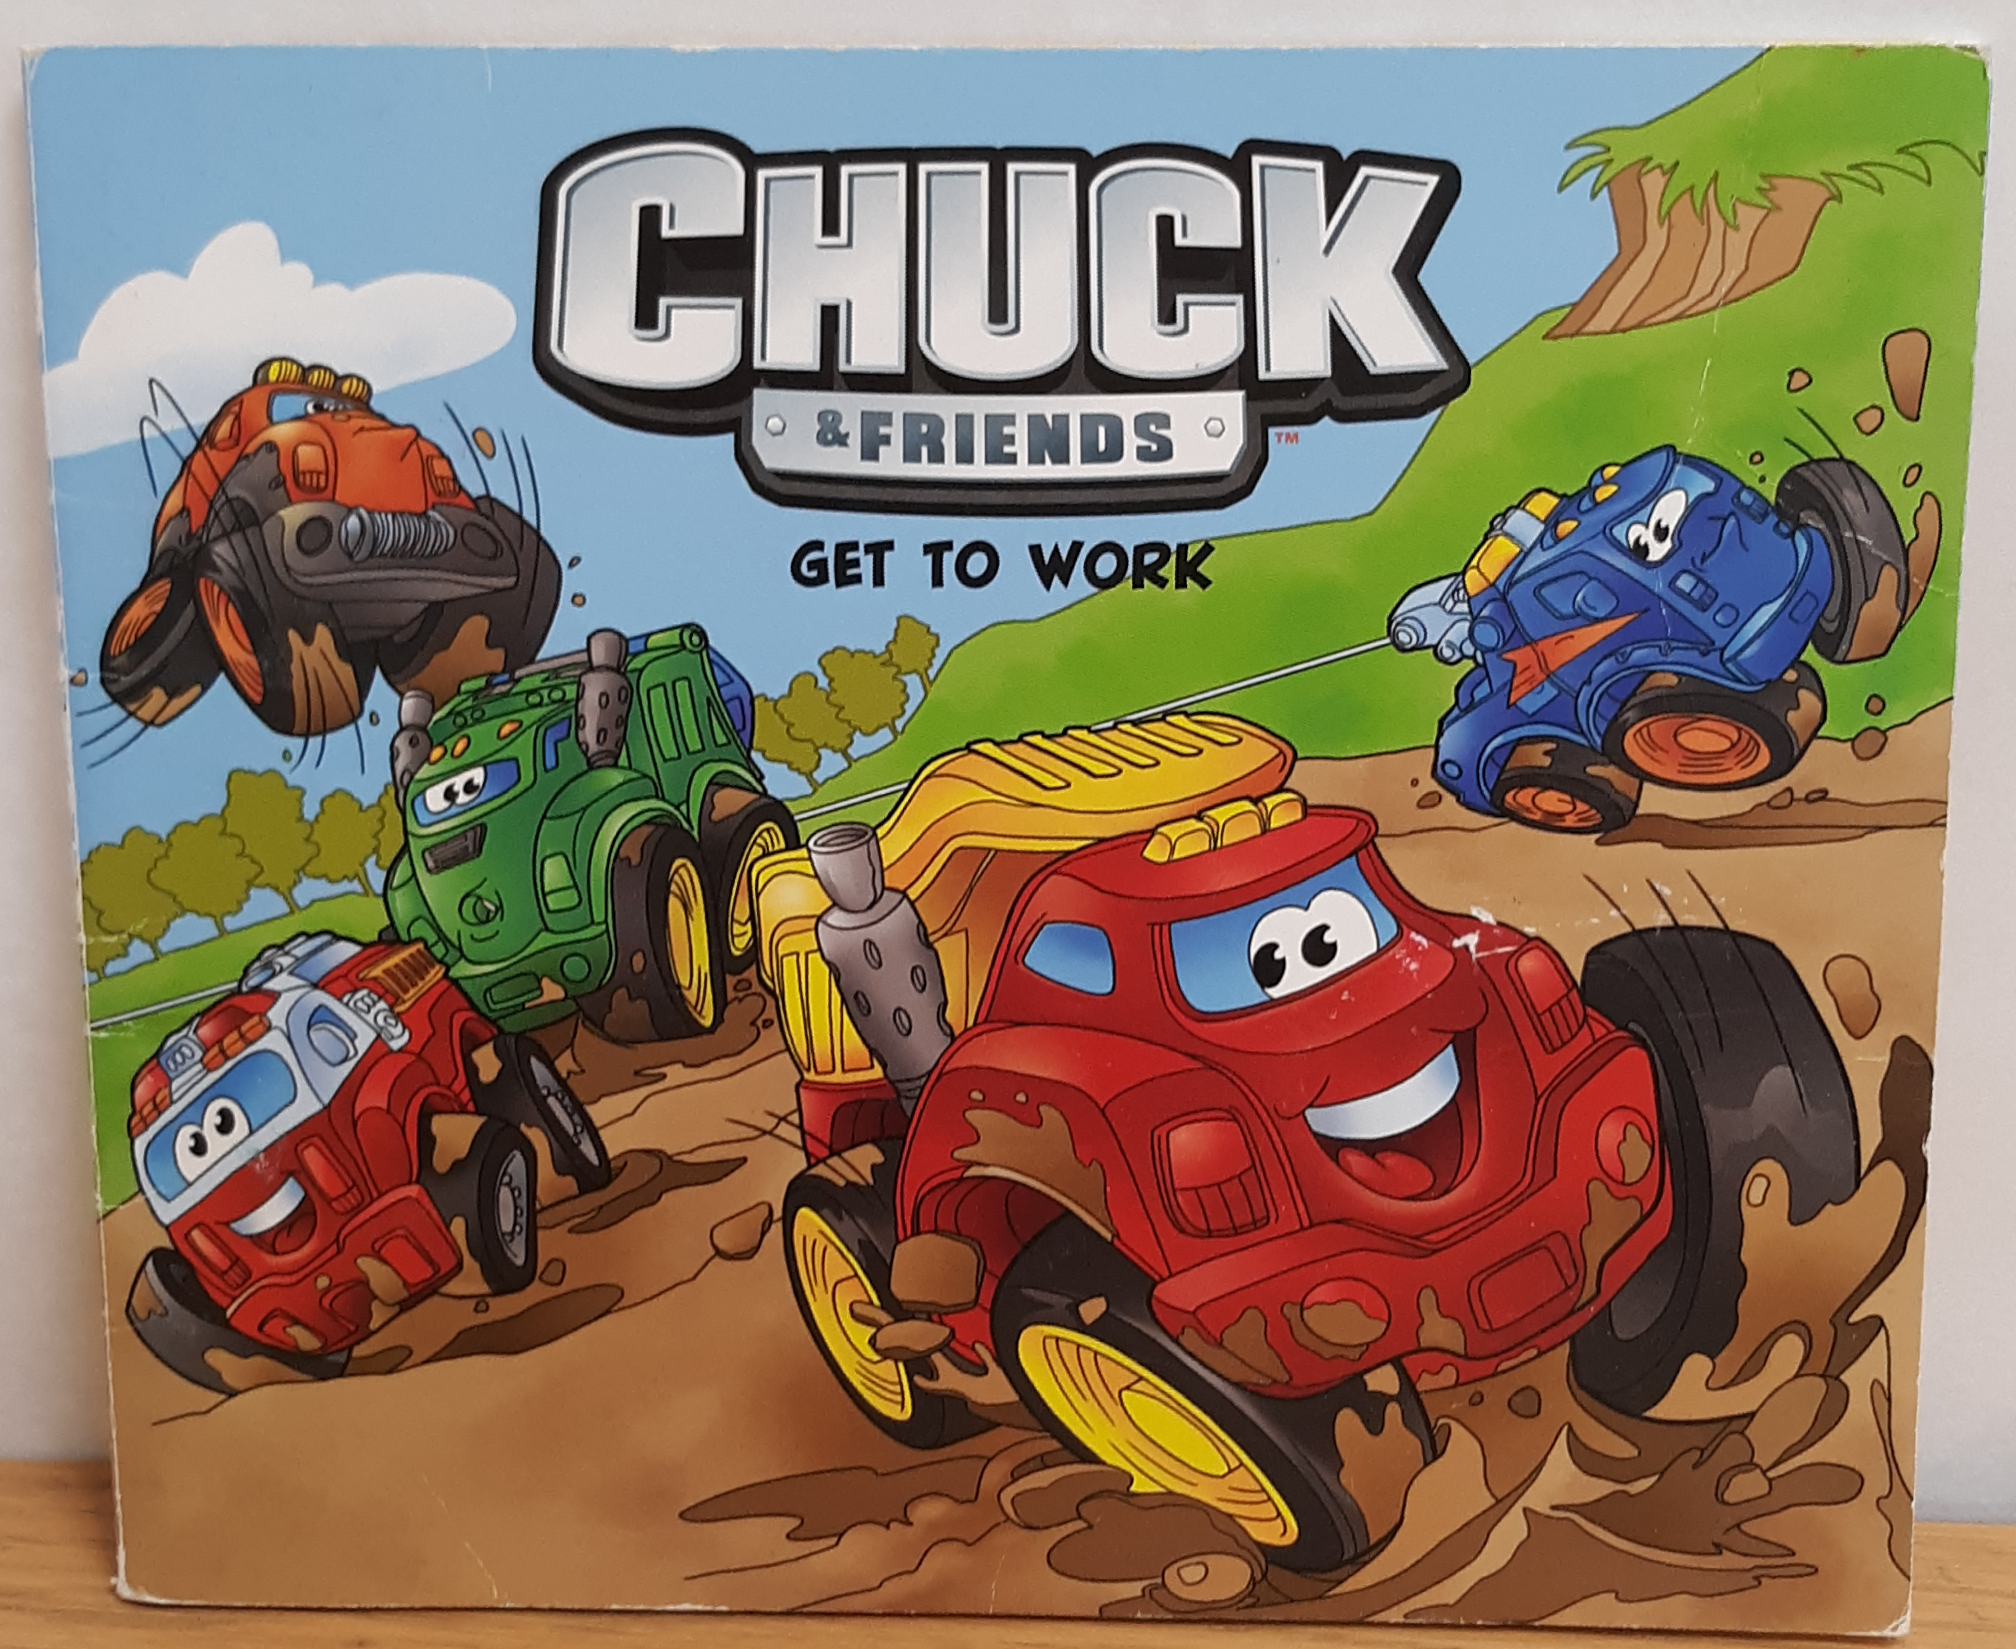 https://0201.nccdn.net/1_2/000/000/182/8bd/chuck-and-friends-get-to-work.png